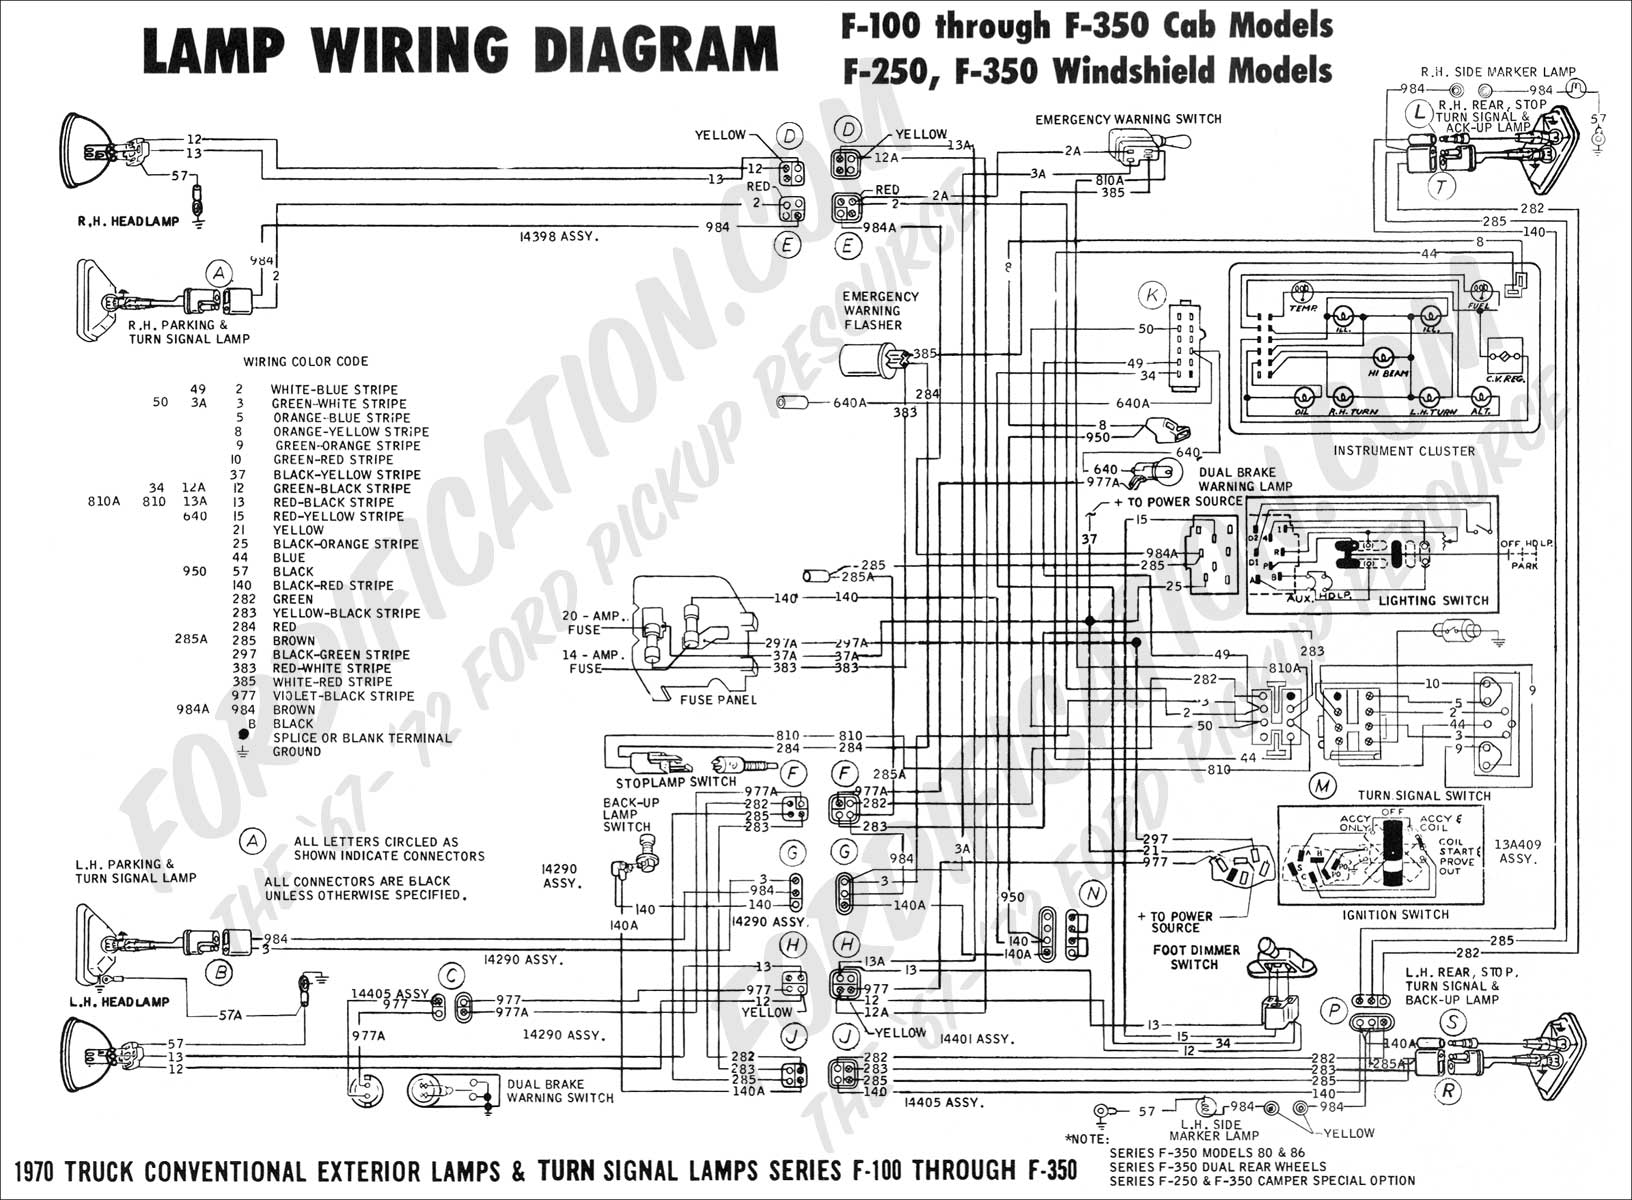 Wiring Diagram For A 73 78 Ford F100 Libraries Icp Heat Pump Defrost Board Model Phm342kooa Third Levelwiring 1978 Simple Fairmont